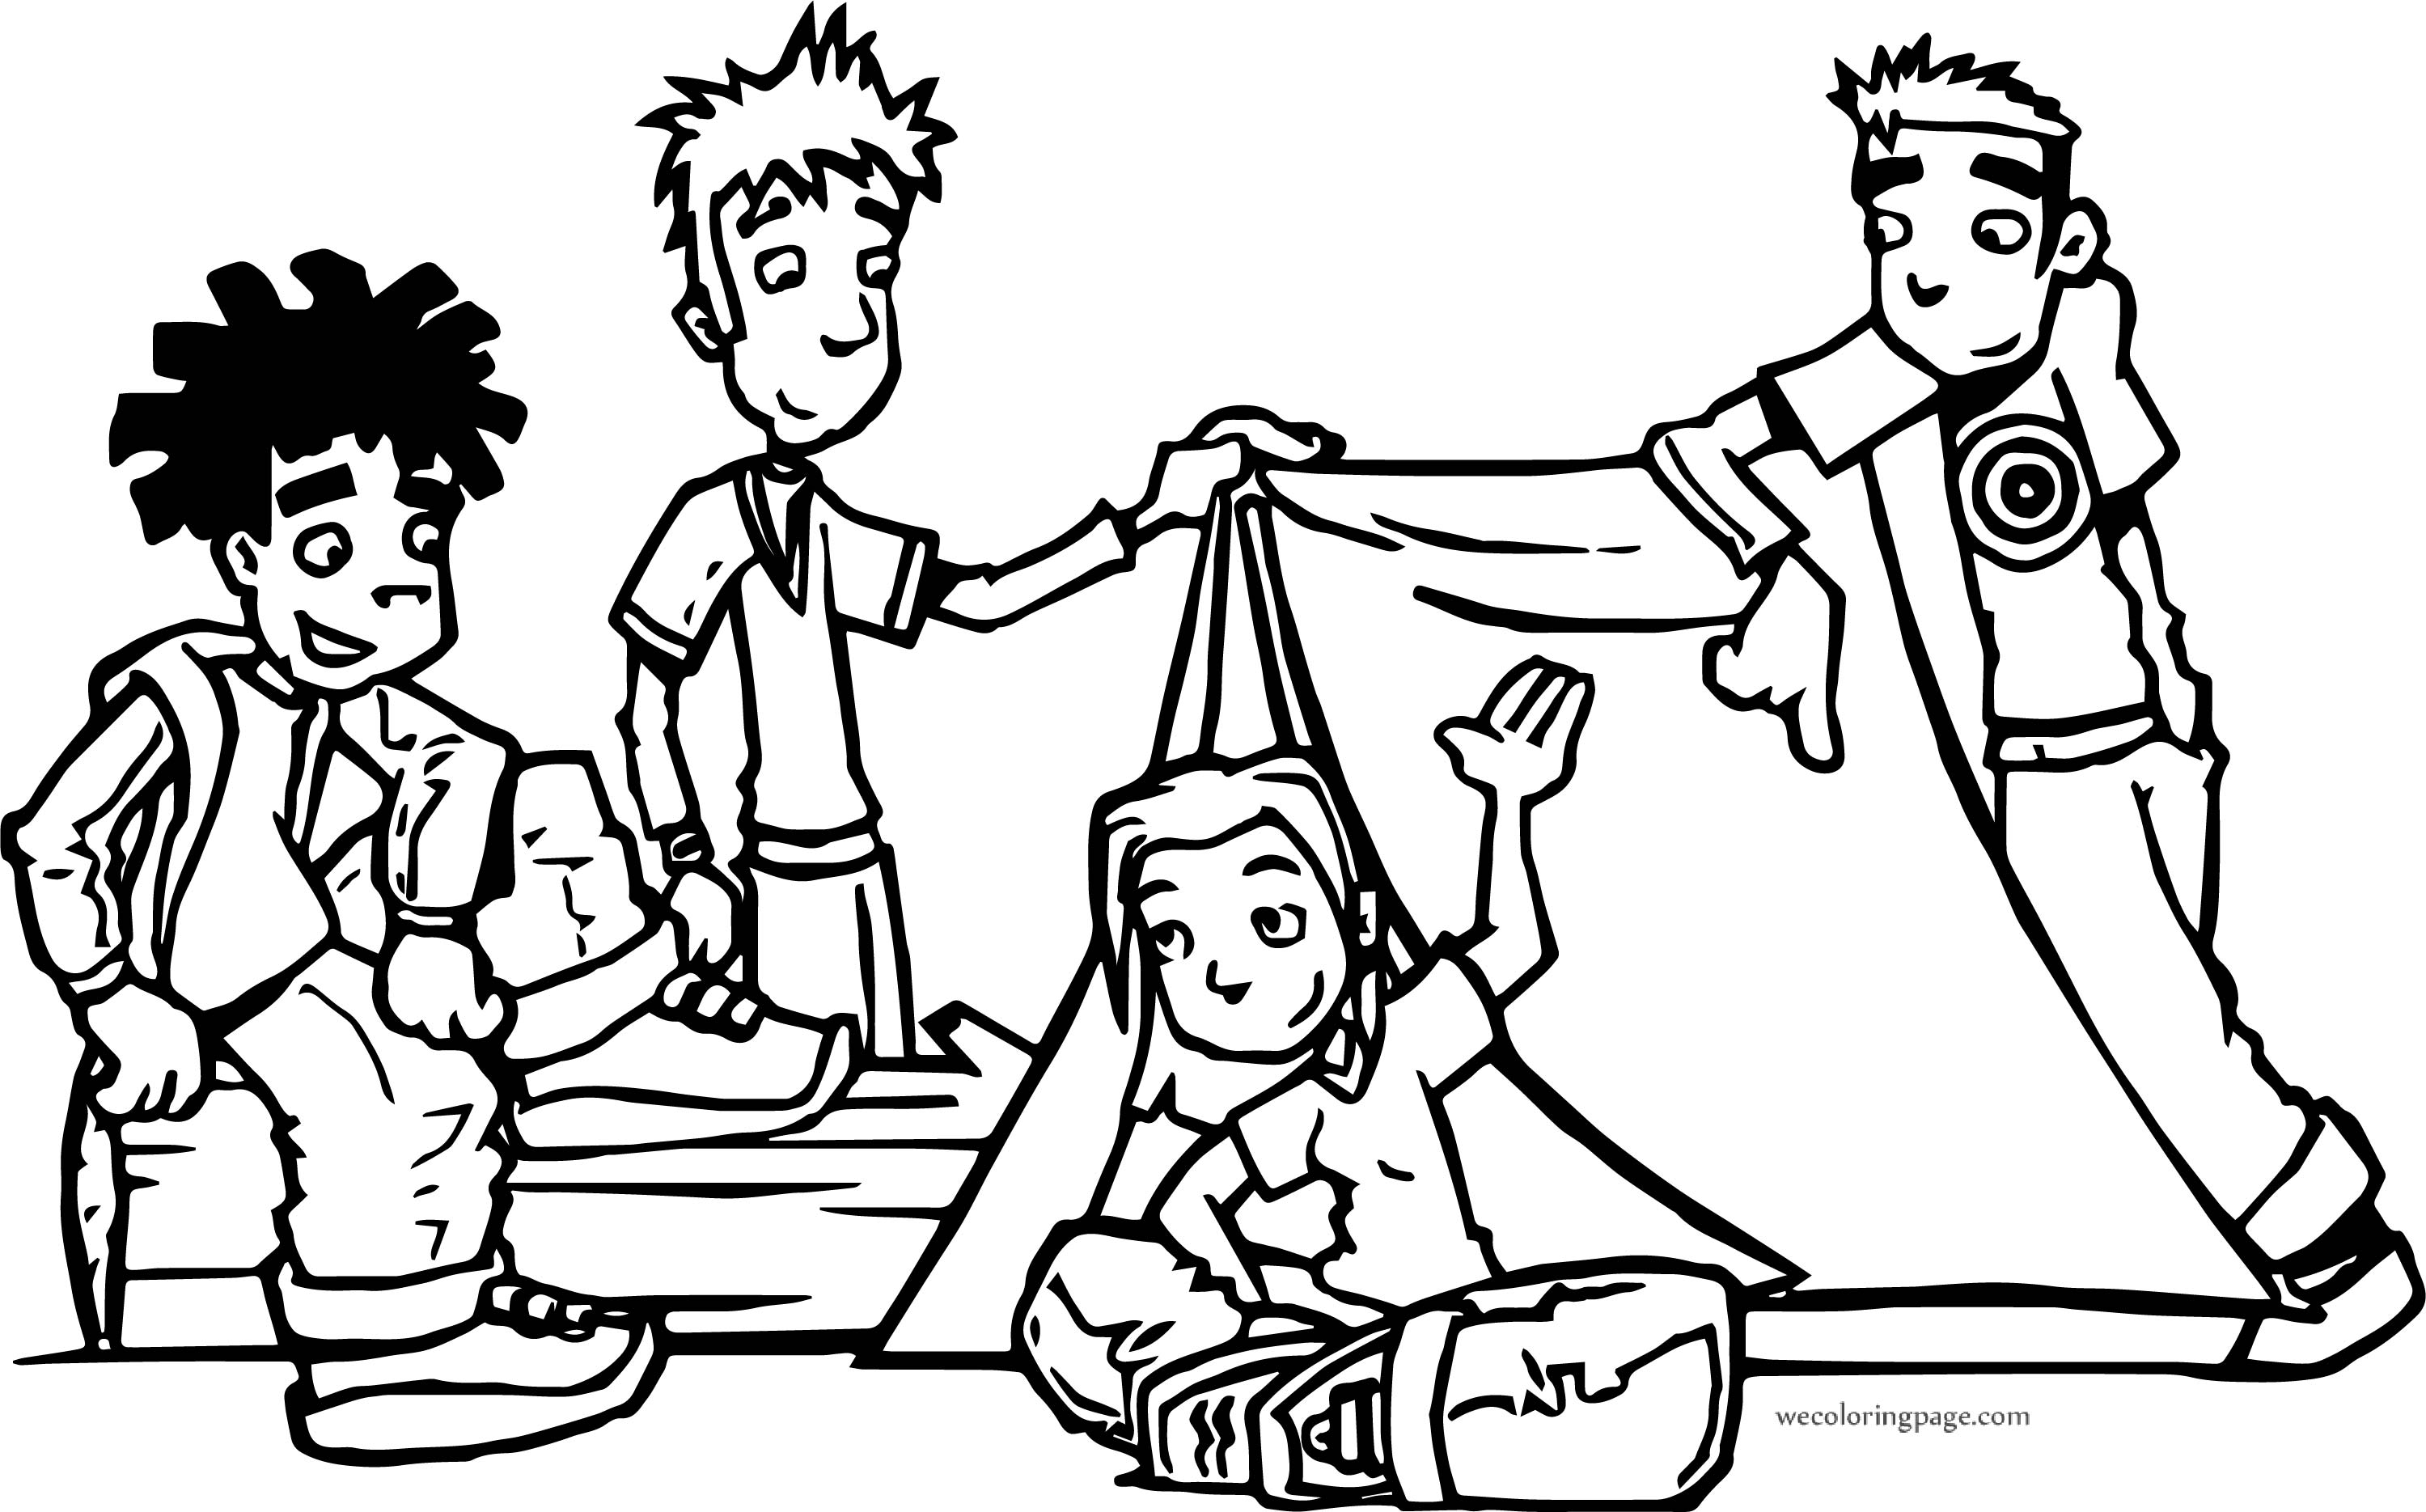 Gunfire Camping Kids Coloring Page